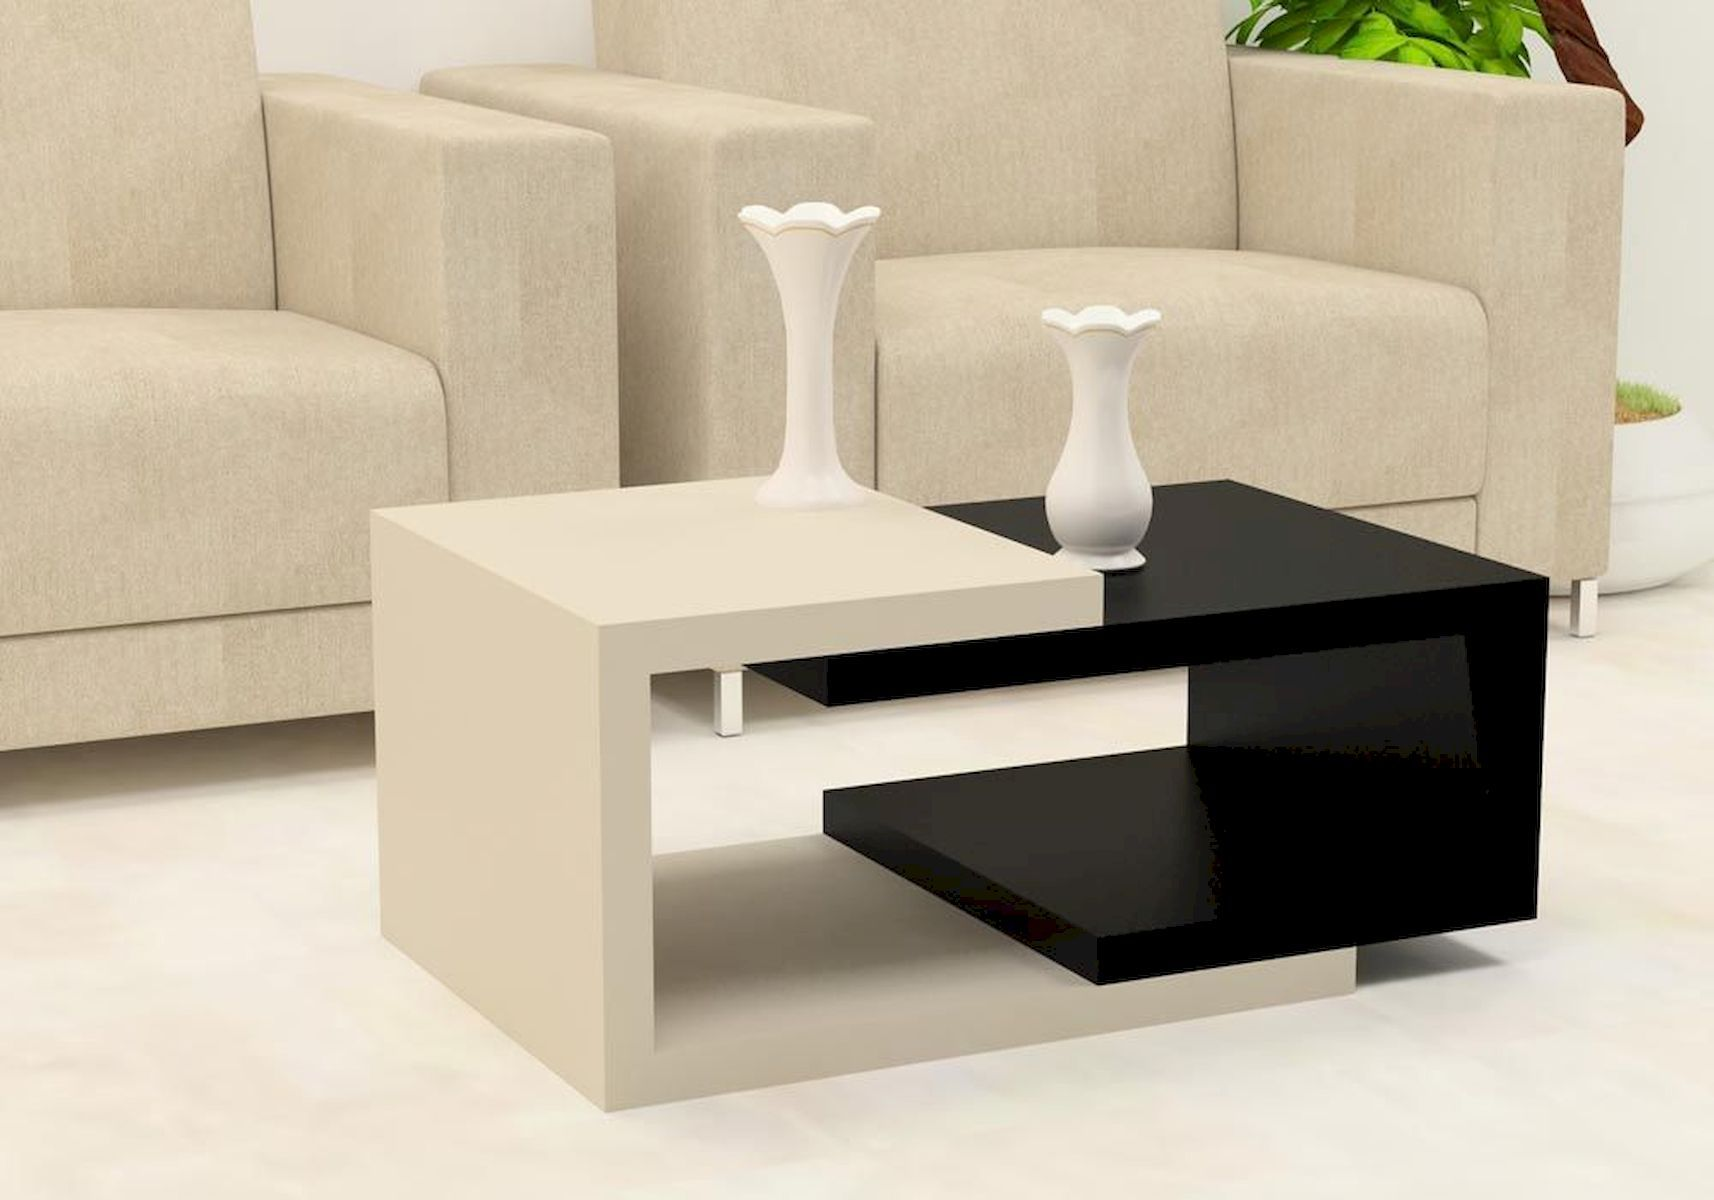 Coffee Table Ideas For Your Living Room Jihanshanum Center Table Living Room Living Room Table Centre Table Living Room [ 1200 x 1714 Pixel ]